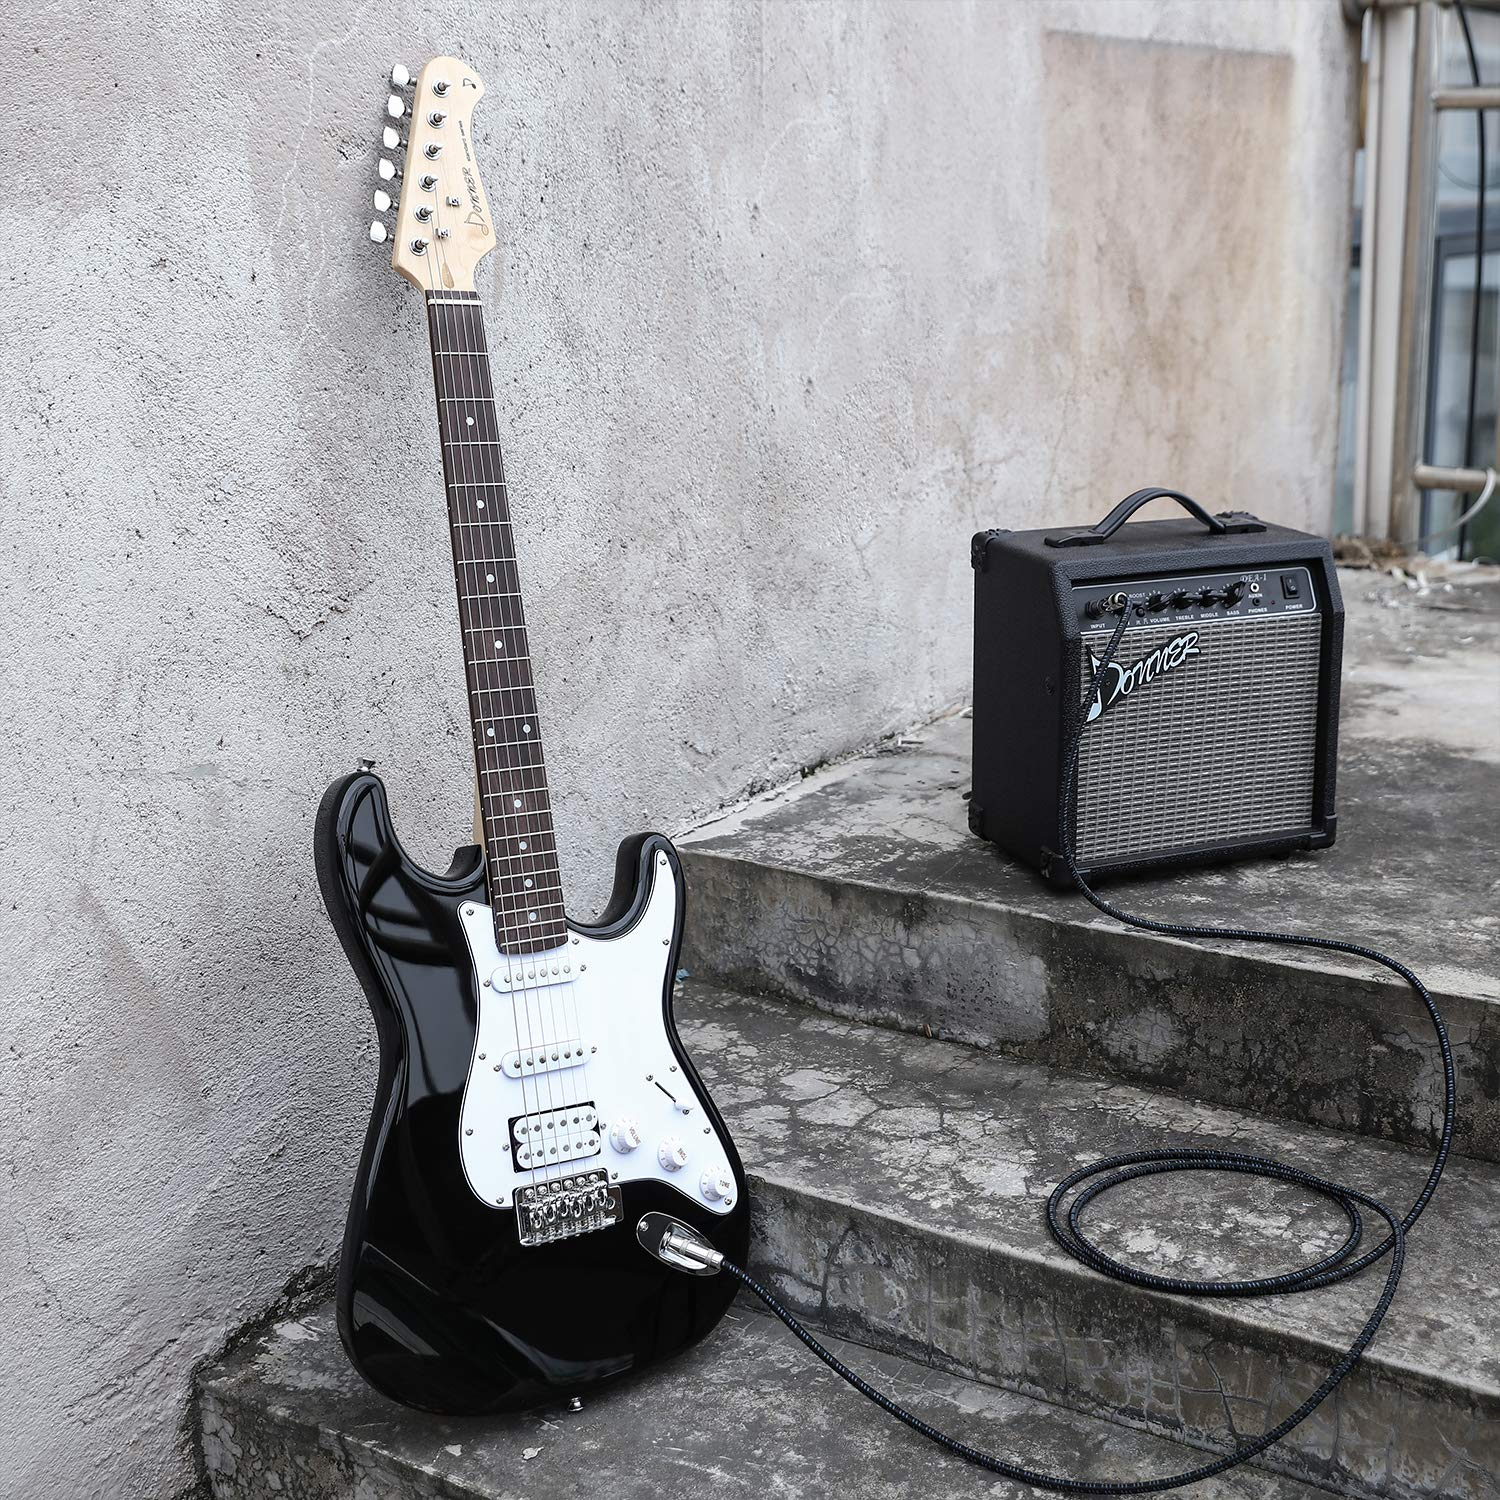 Donner DST-1B Black Electric Guitar & Amp that comes with it